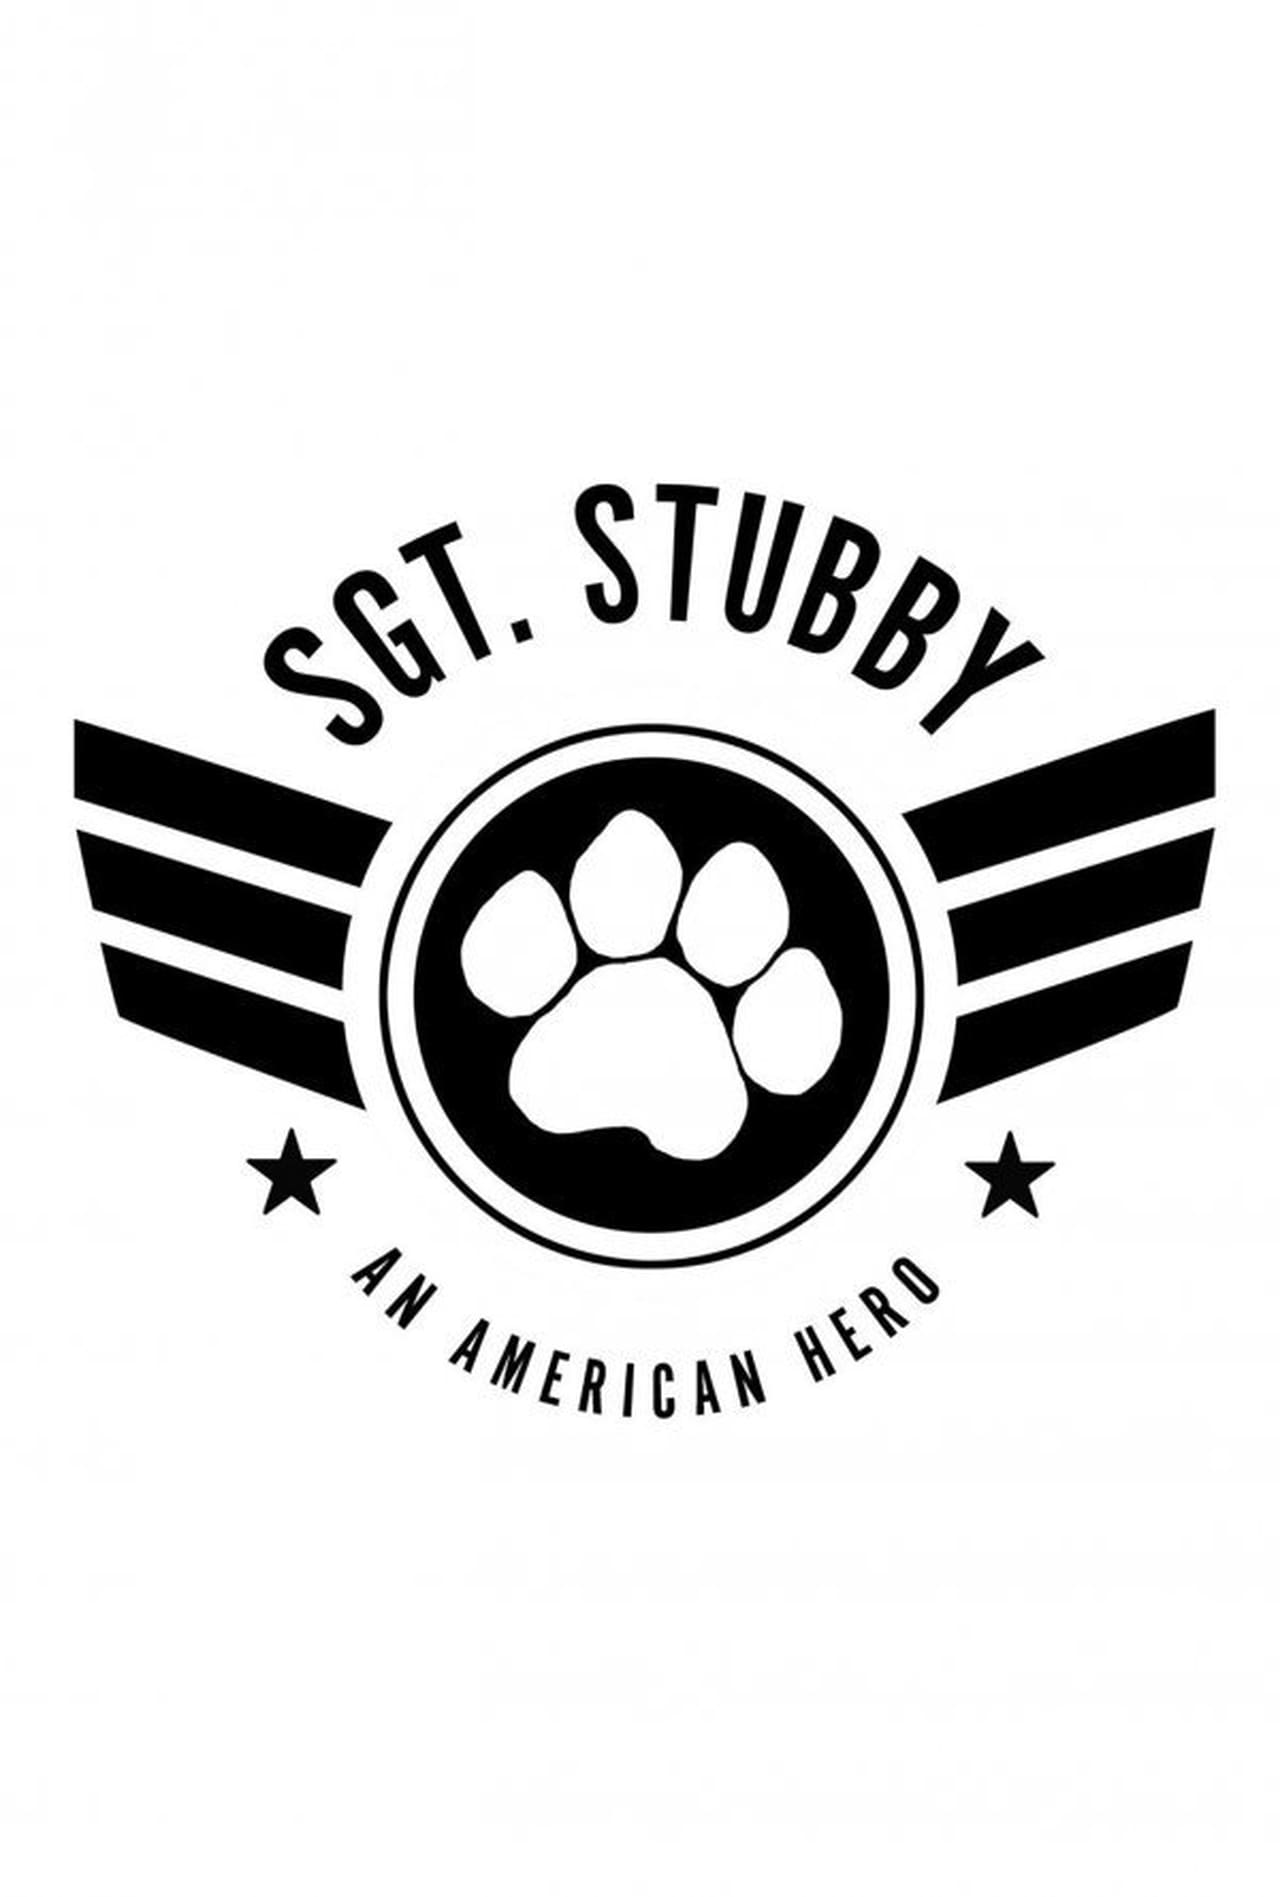 Watch Free Sgt Stubby An American Hero Full